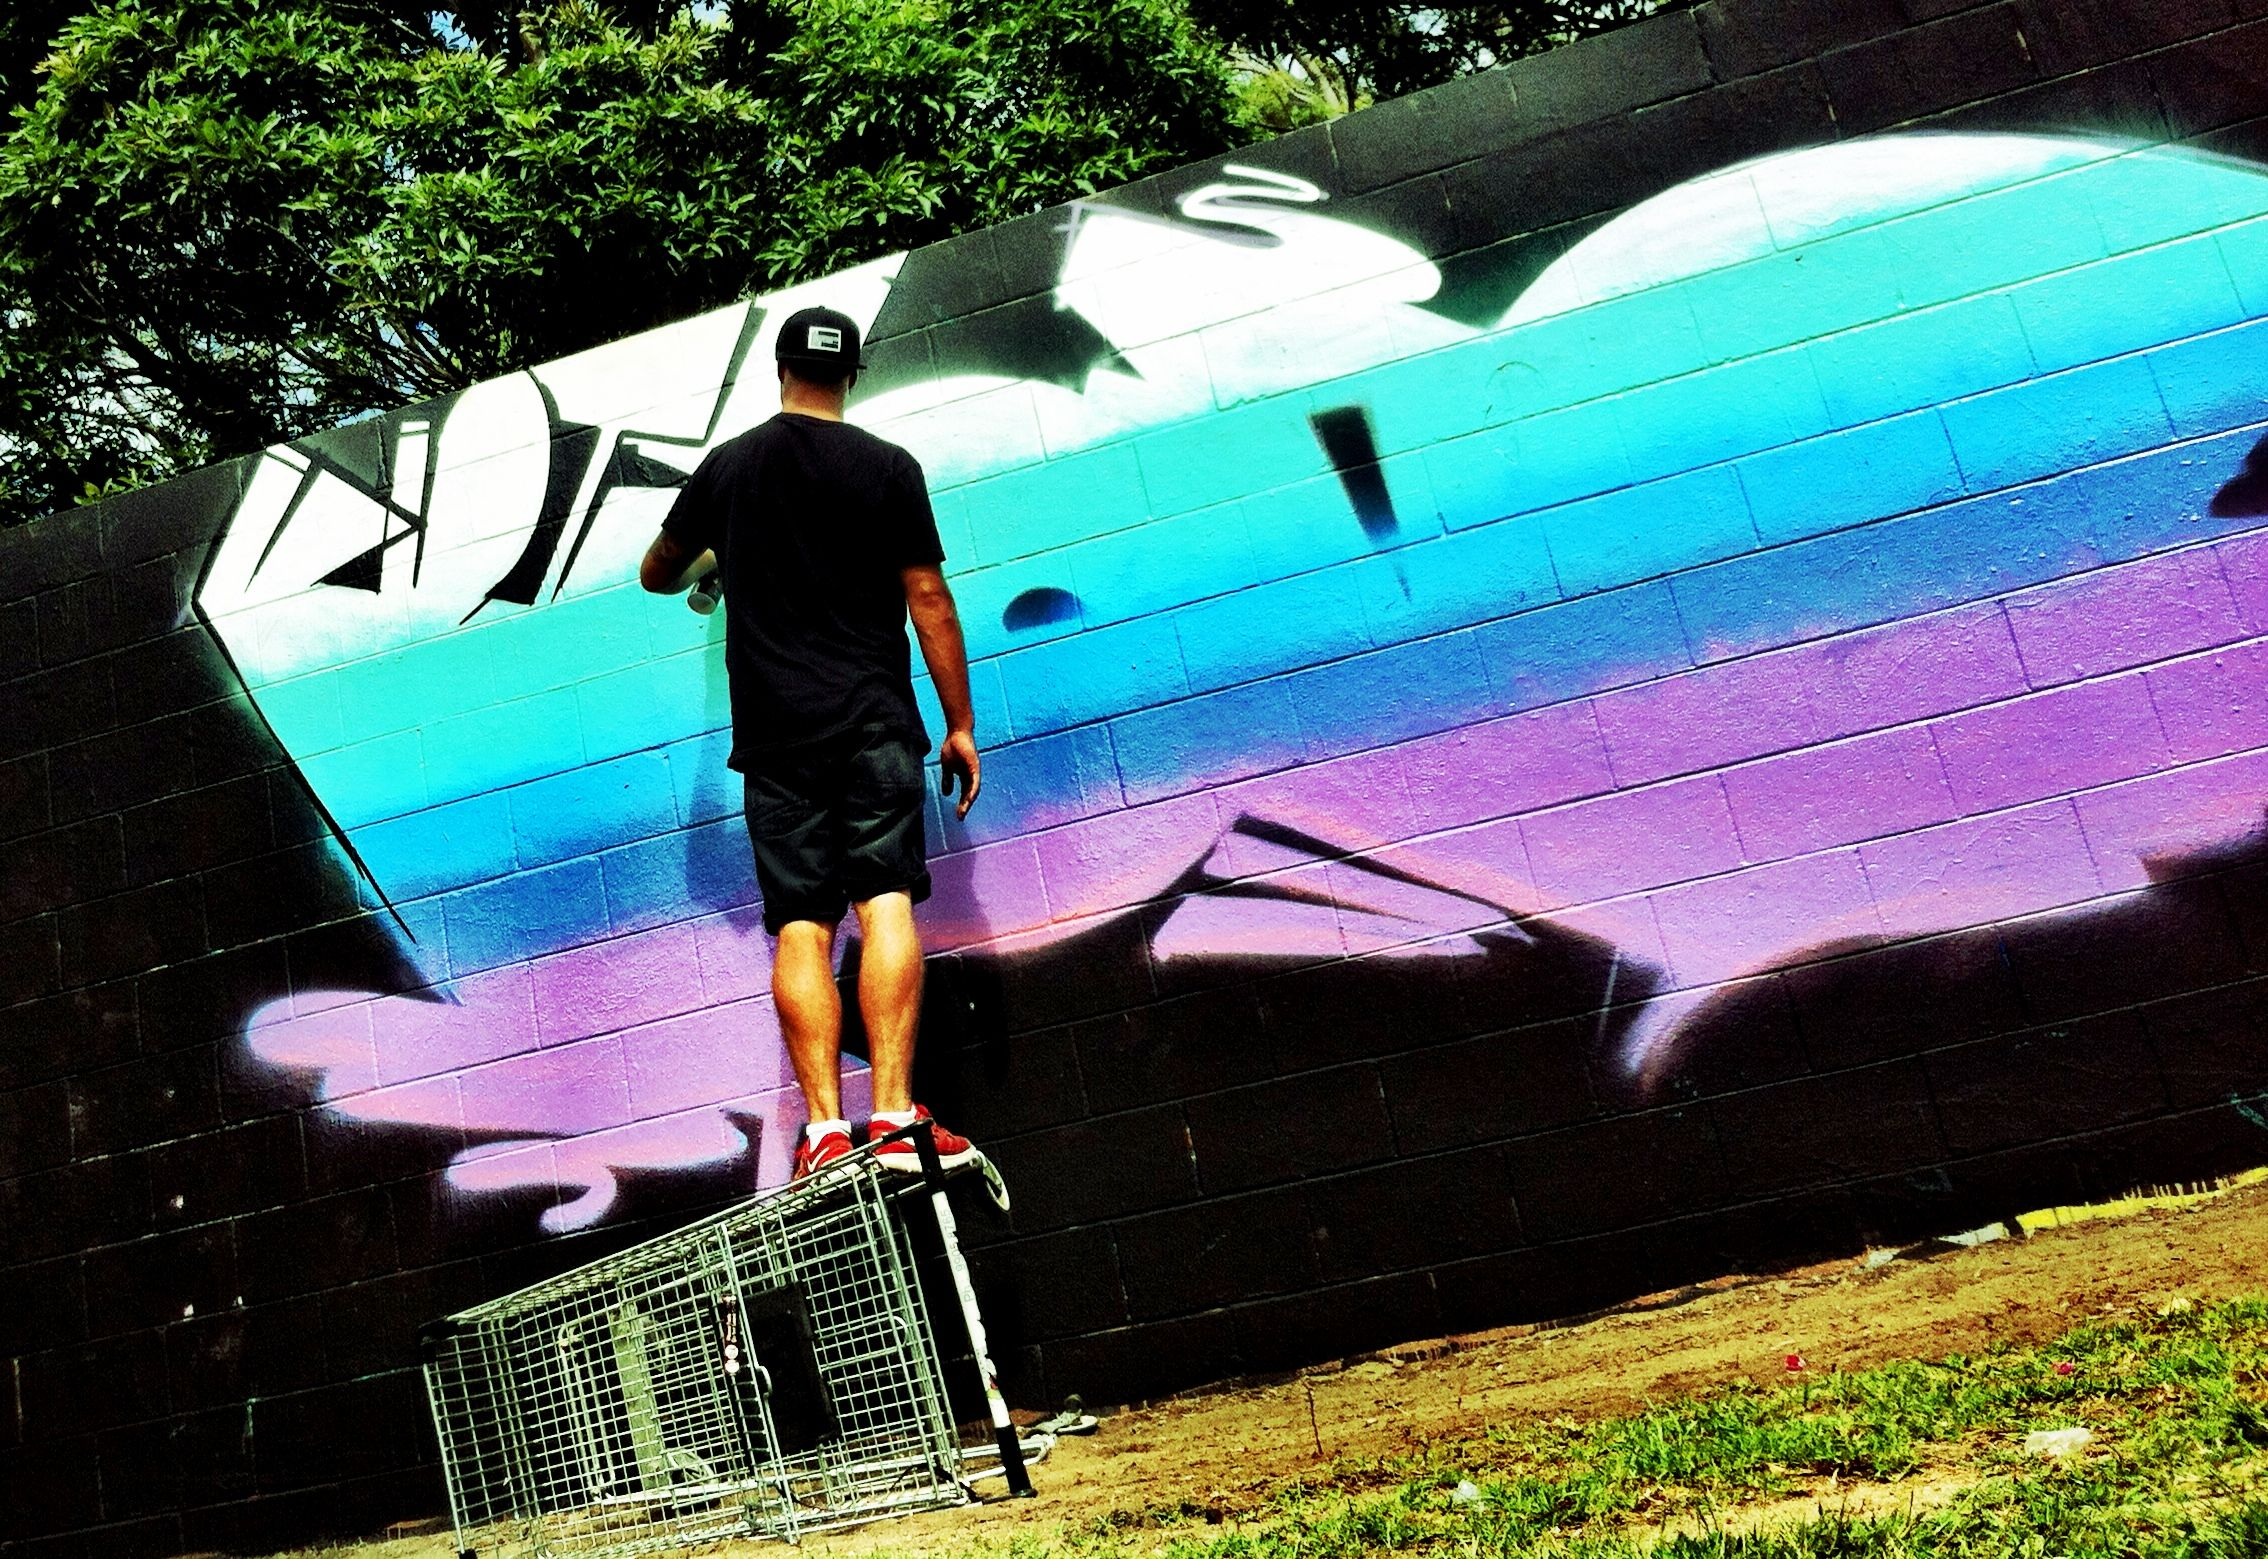 Graffiti tag in action aces idiot by James Snyman